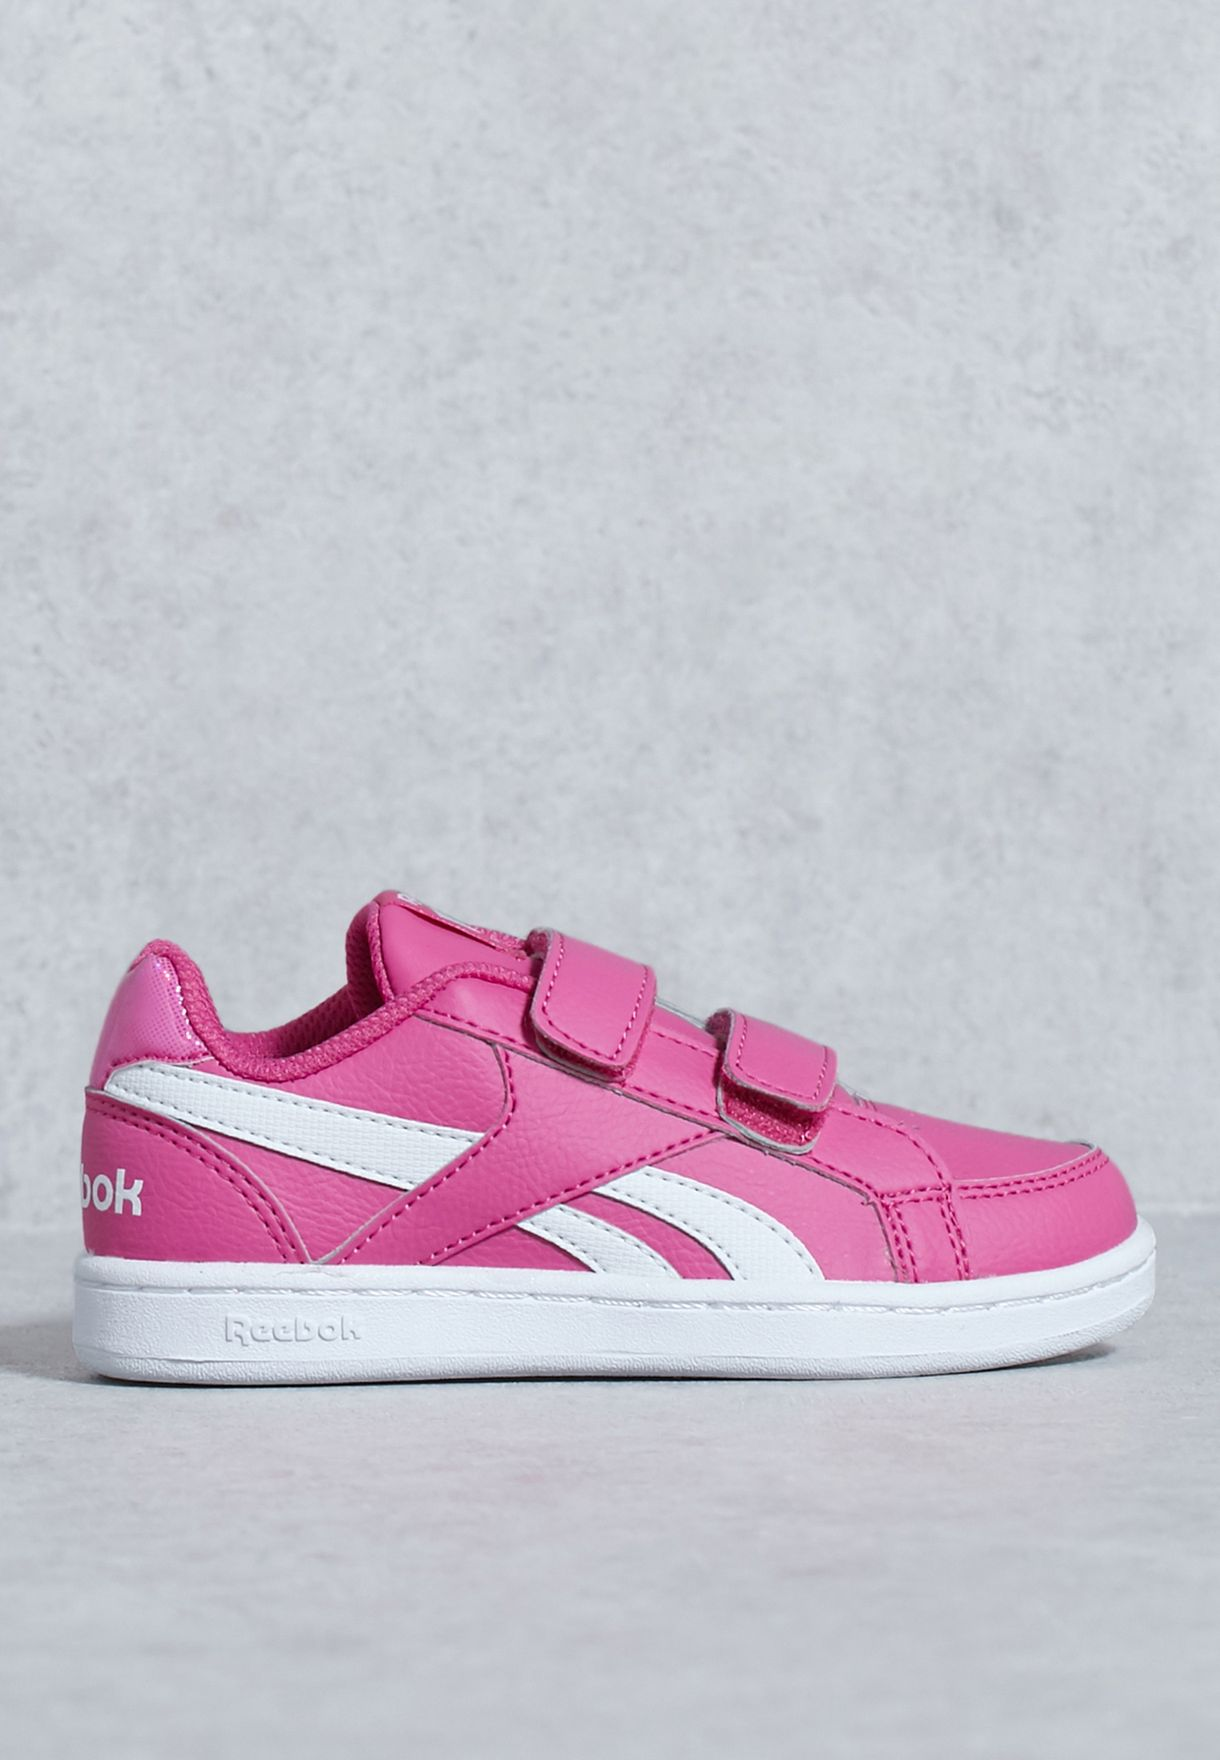 59ef8d647f3 Shop Reebok pink Royal Prime ALT Kids BS7921 for Kids in UAE ...